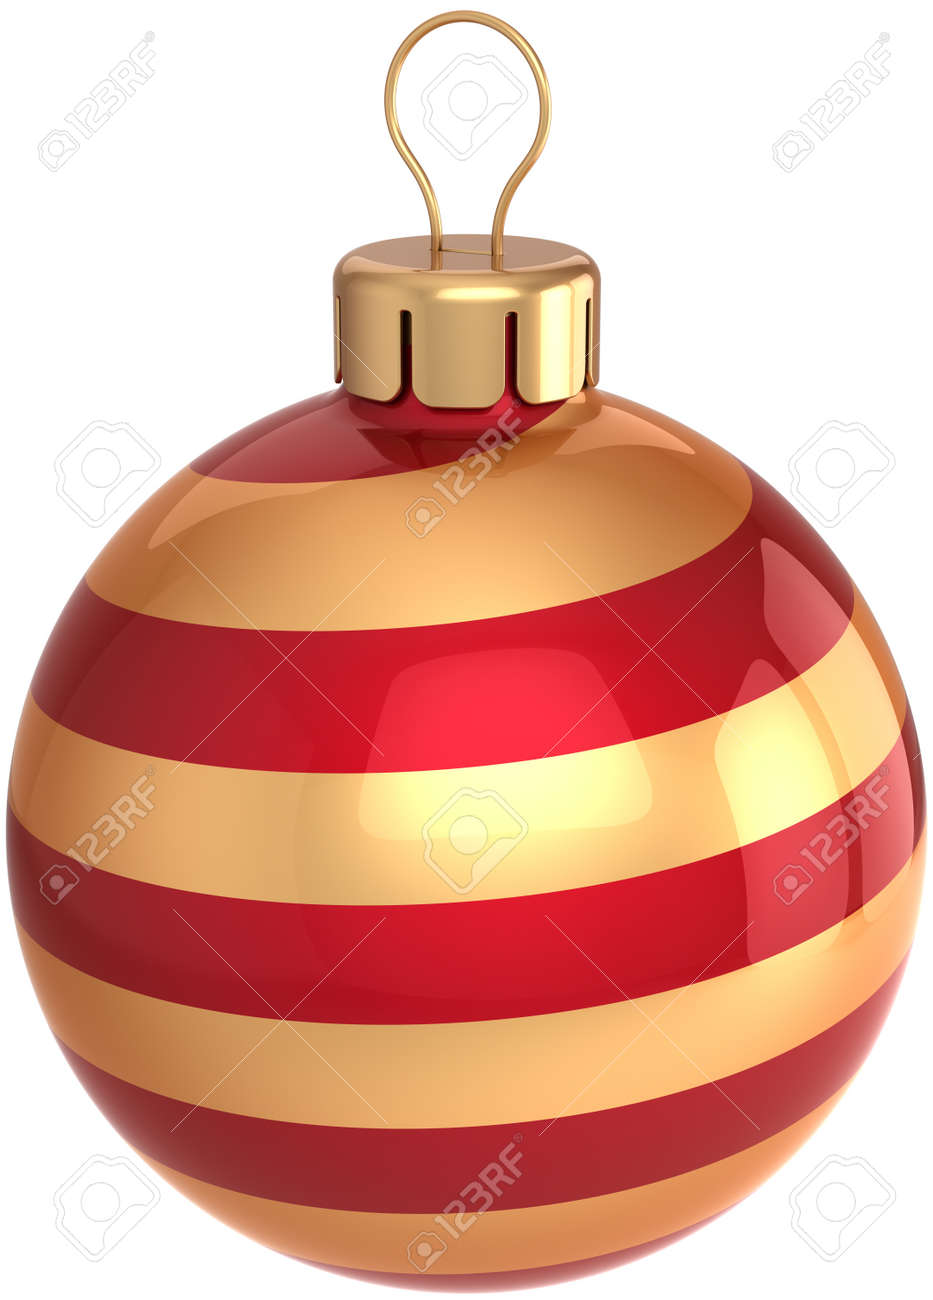 Christmas ball Happy New Year bauble holiday decoration colored golden and red. Beautiful shiny Merry Xmas symbol classic. Detailed 3D render. Isolated on white background Stock Photo - 10071517